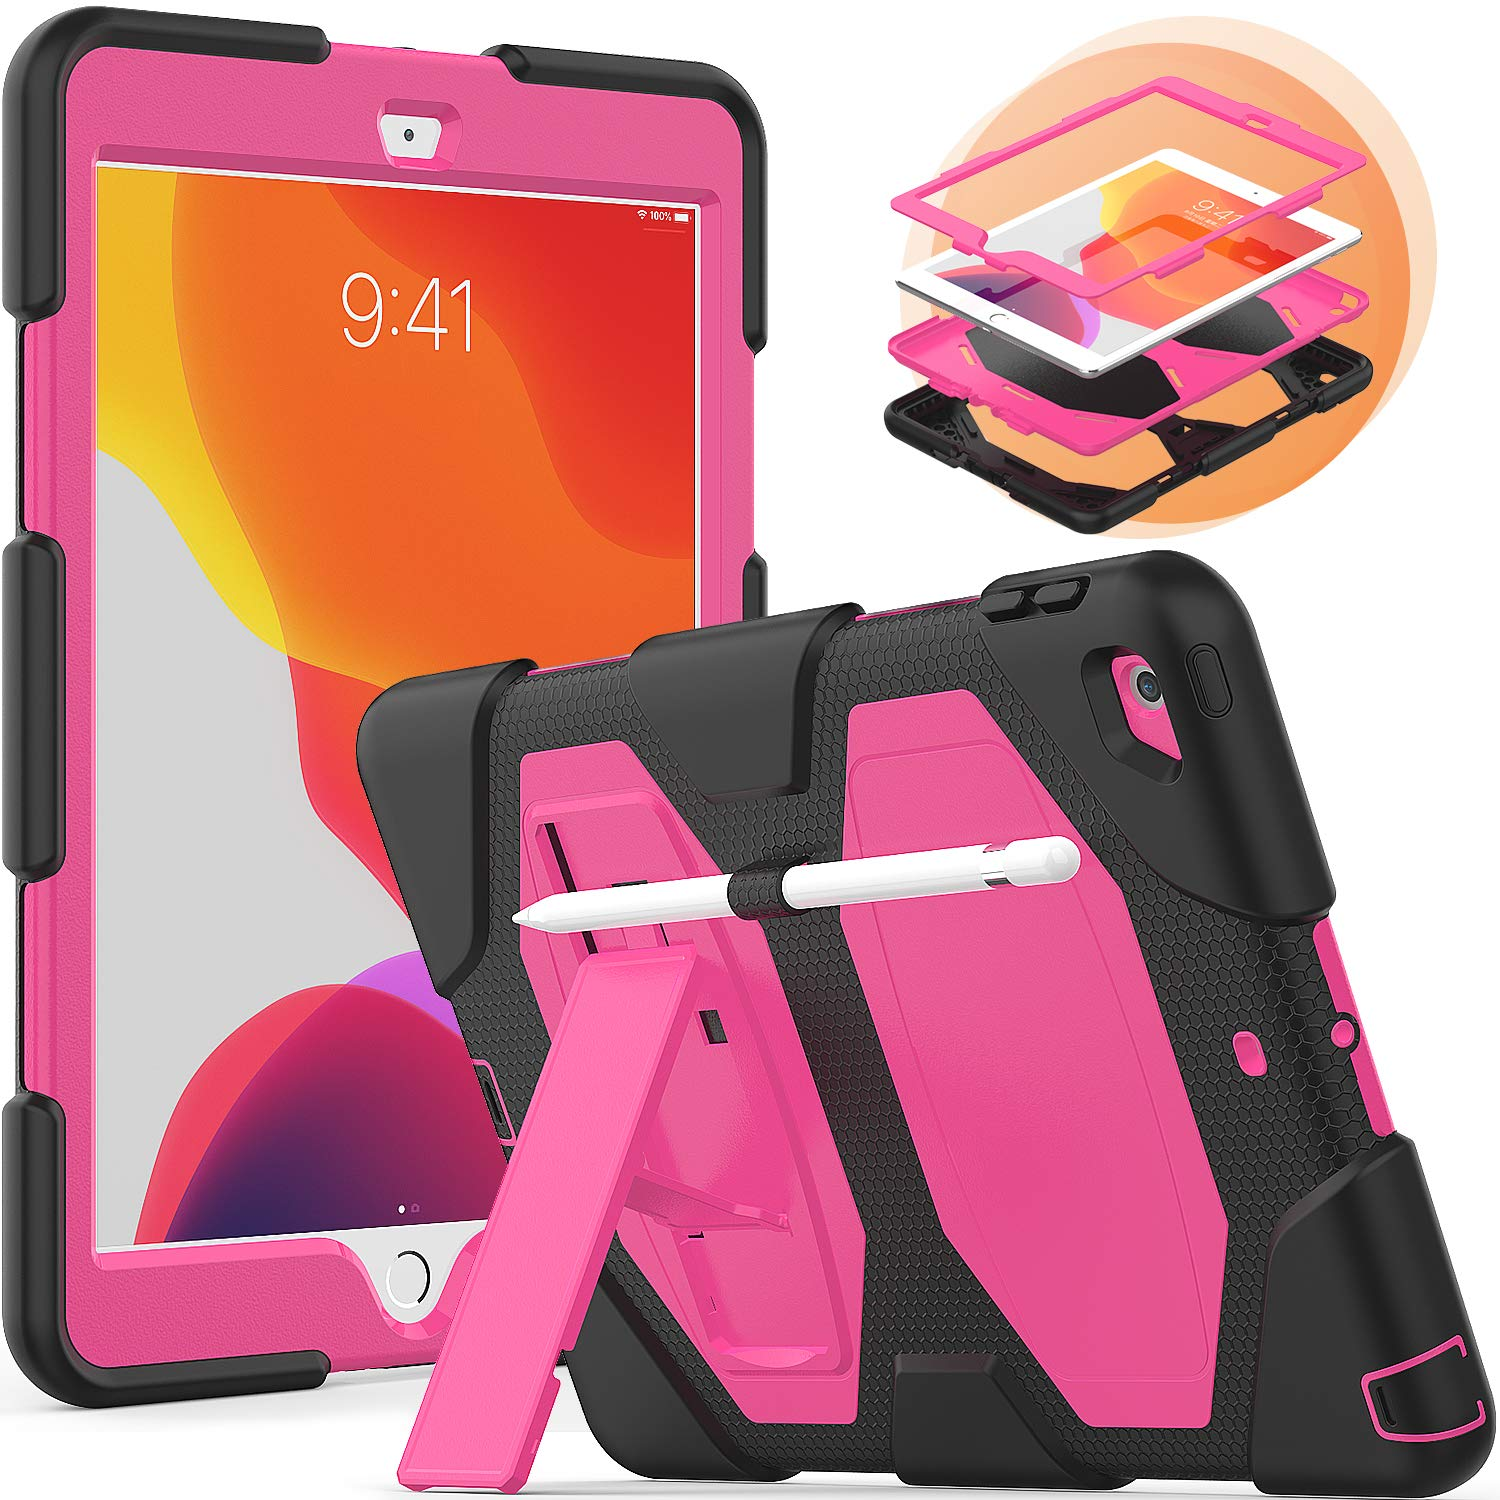 timecity iPad 10.2 Case 2019, iPad 7th Generation Case with Built-in Foldable Kickstand Pencil Holder, Rugged Heavy Duty Proteciton Schockproof Dustproof Scratch Resistance Protective Cover, Rose